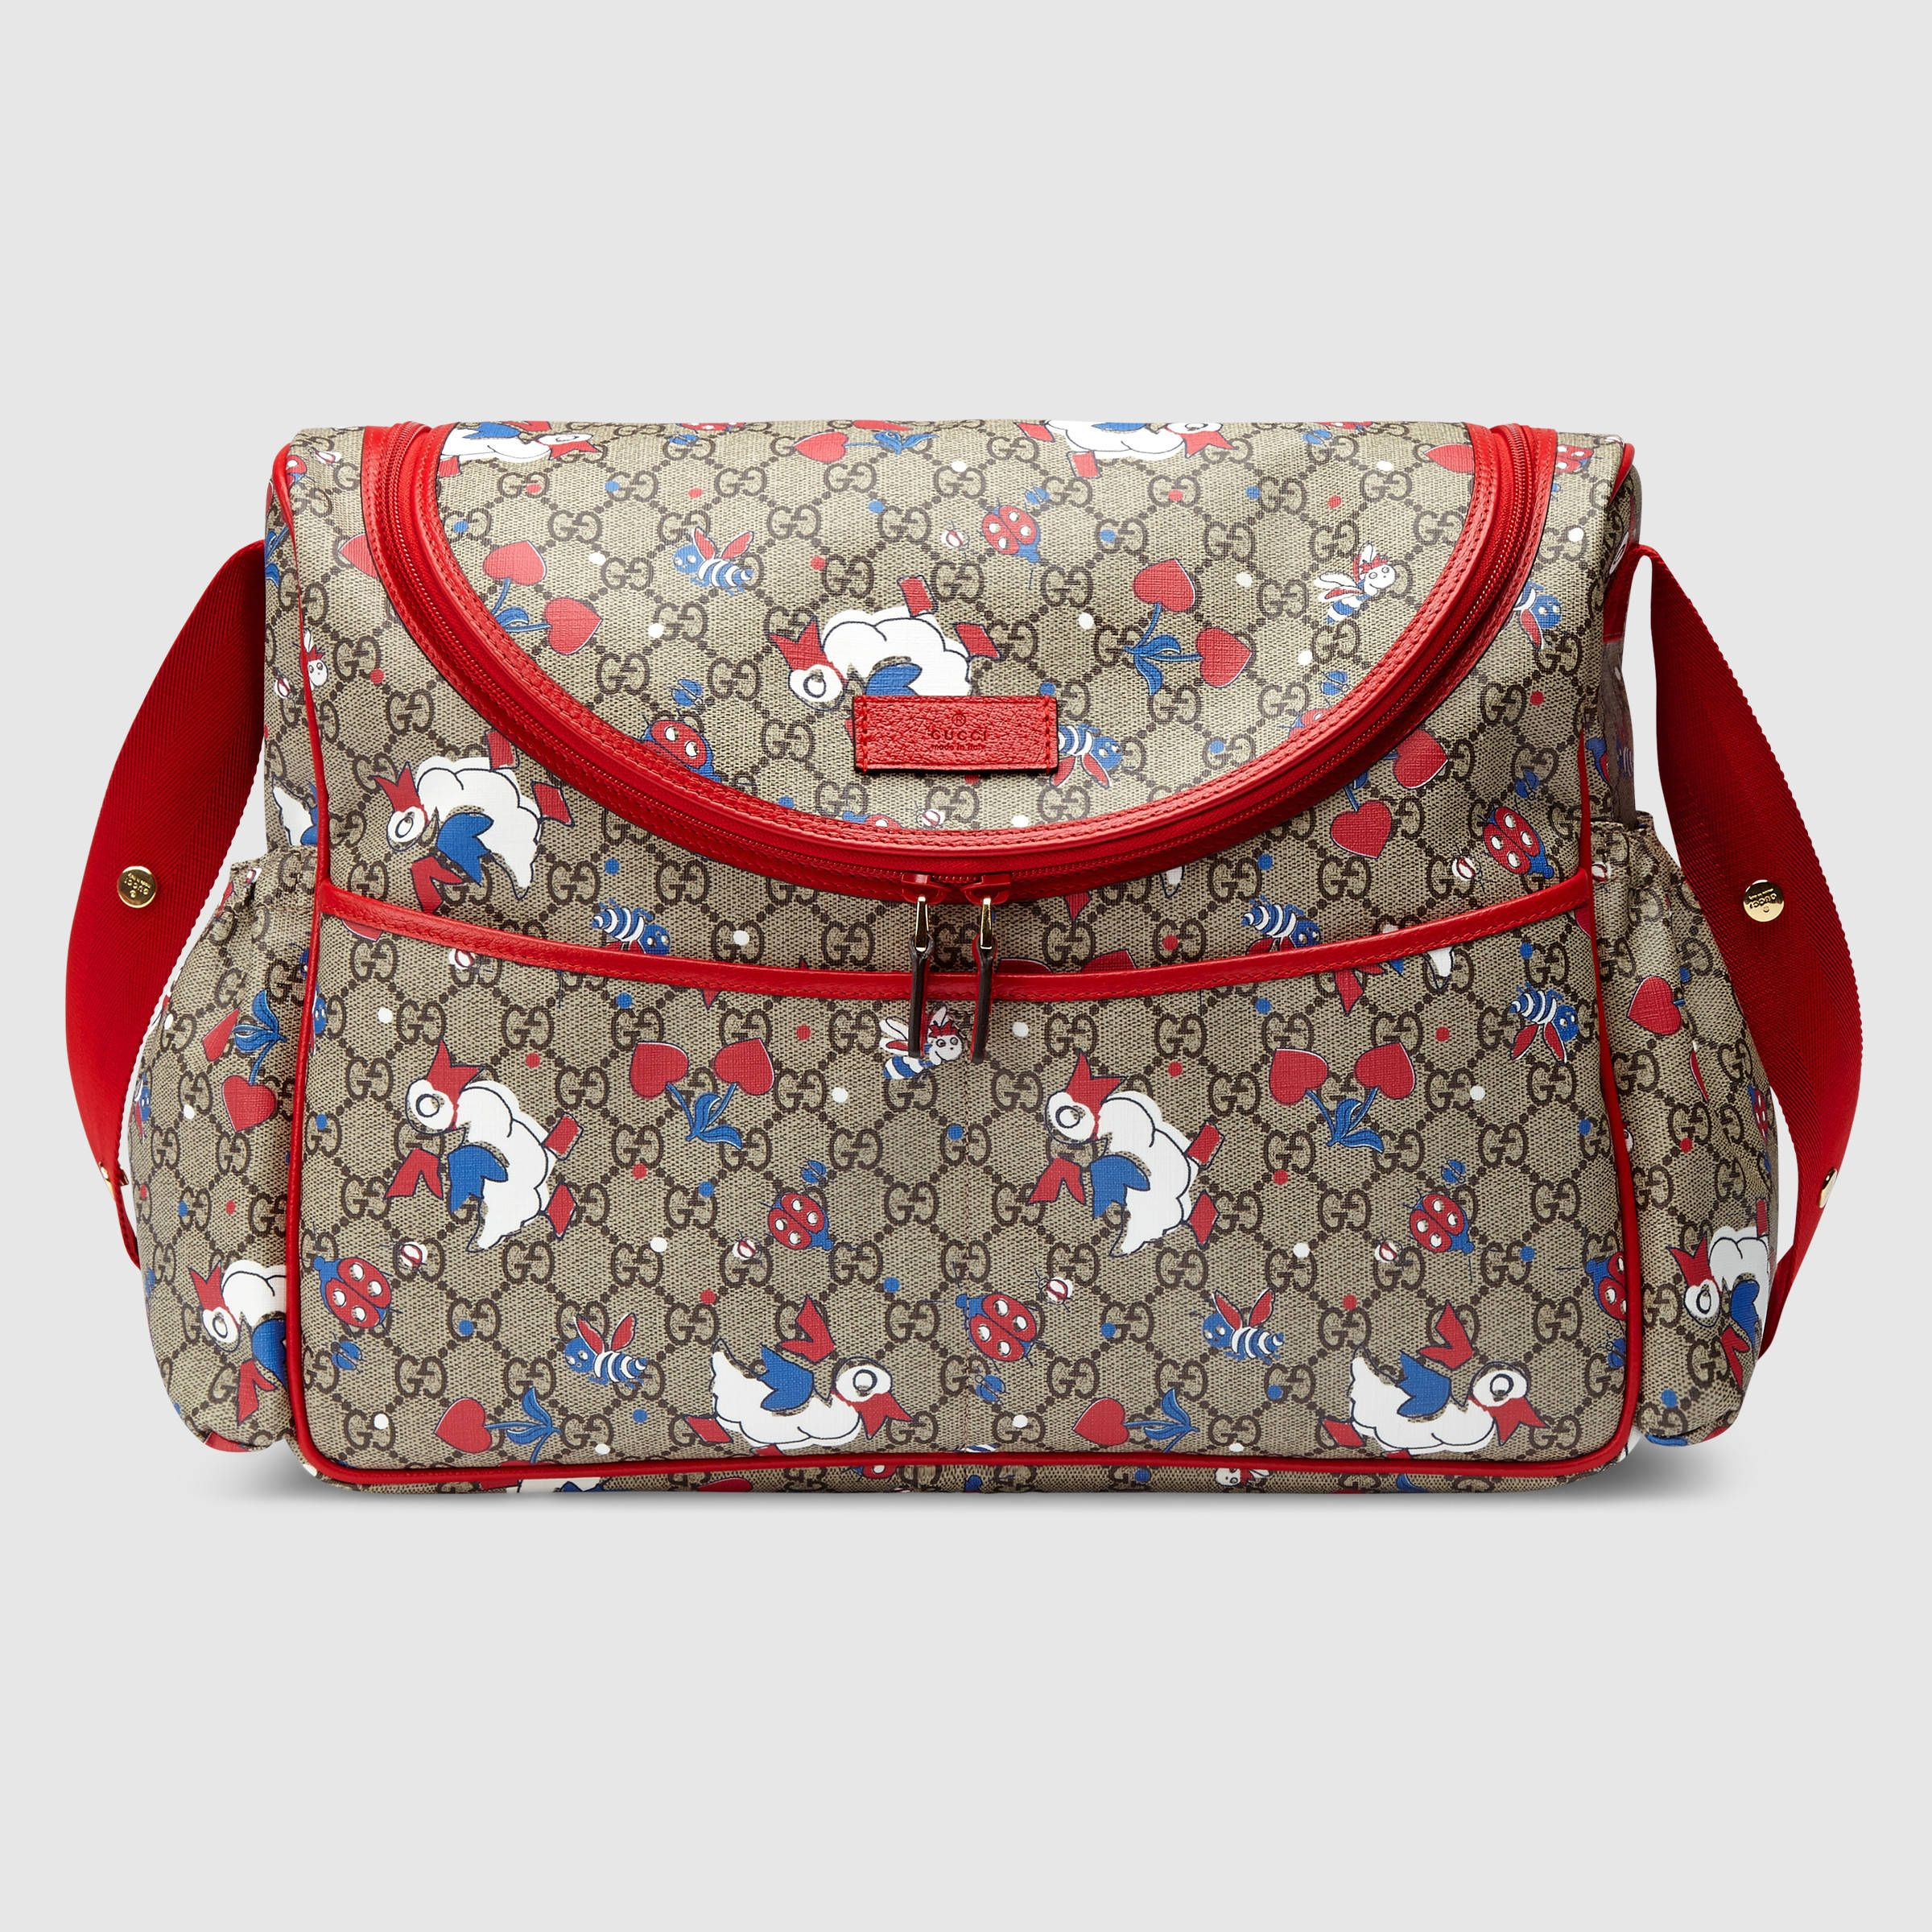 6221ebc5b49 GG ducks diaper bag - Gucci Diaper Bags   Totes 123326K9E4G9291